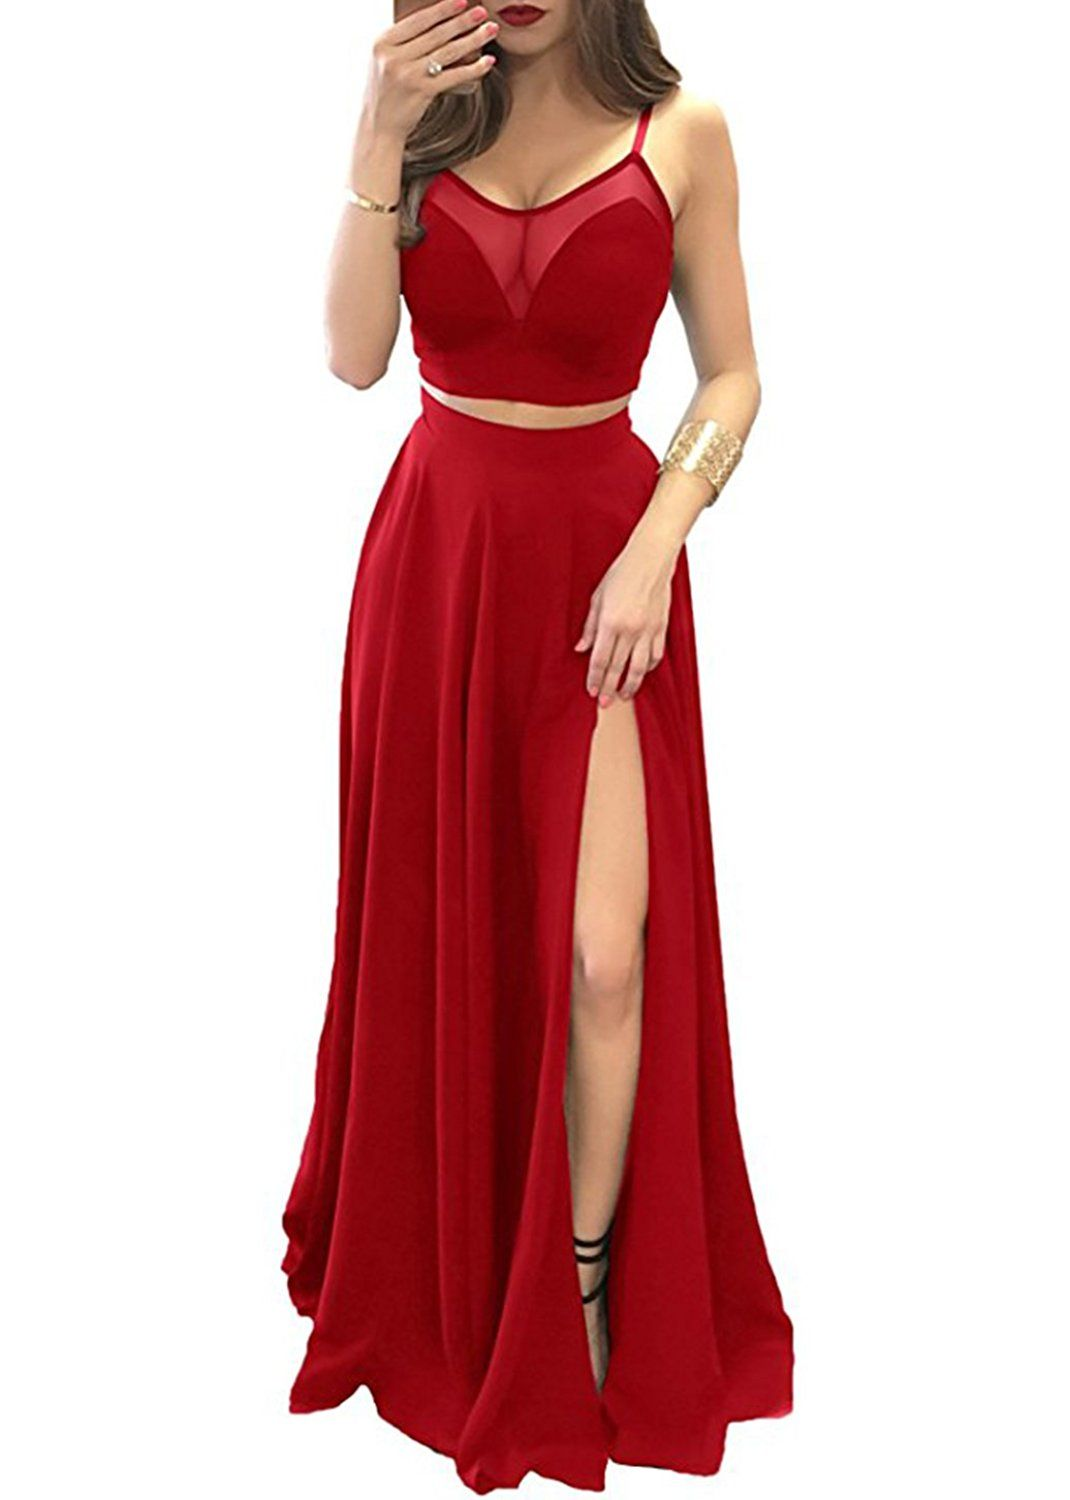 Sexy crop top black prom dress spaghetti straps long evening party